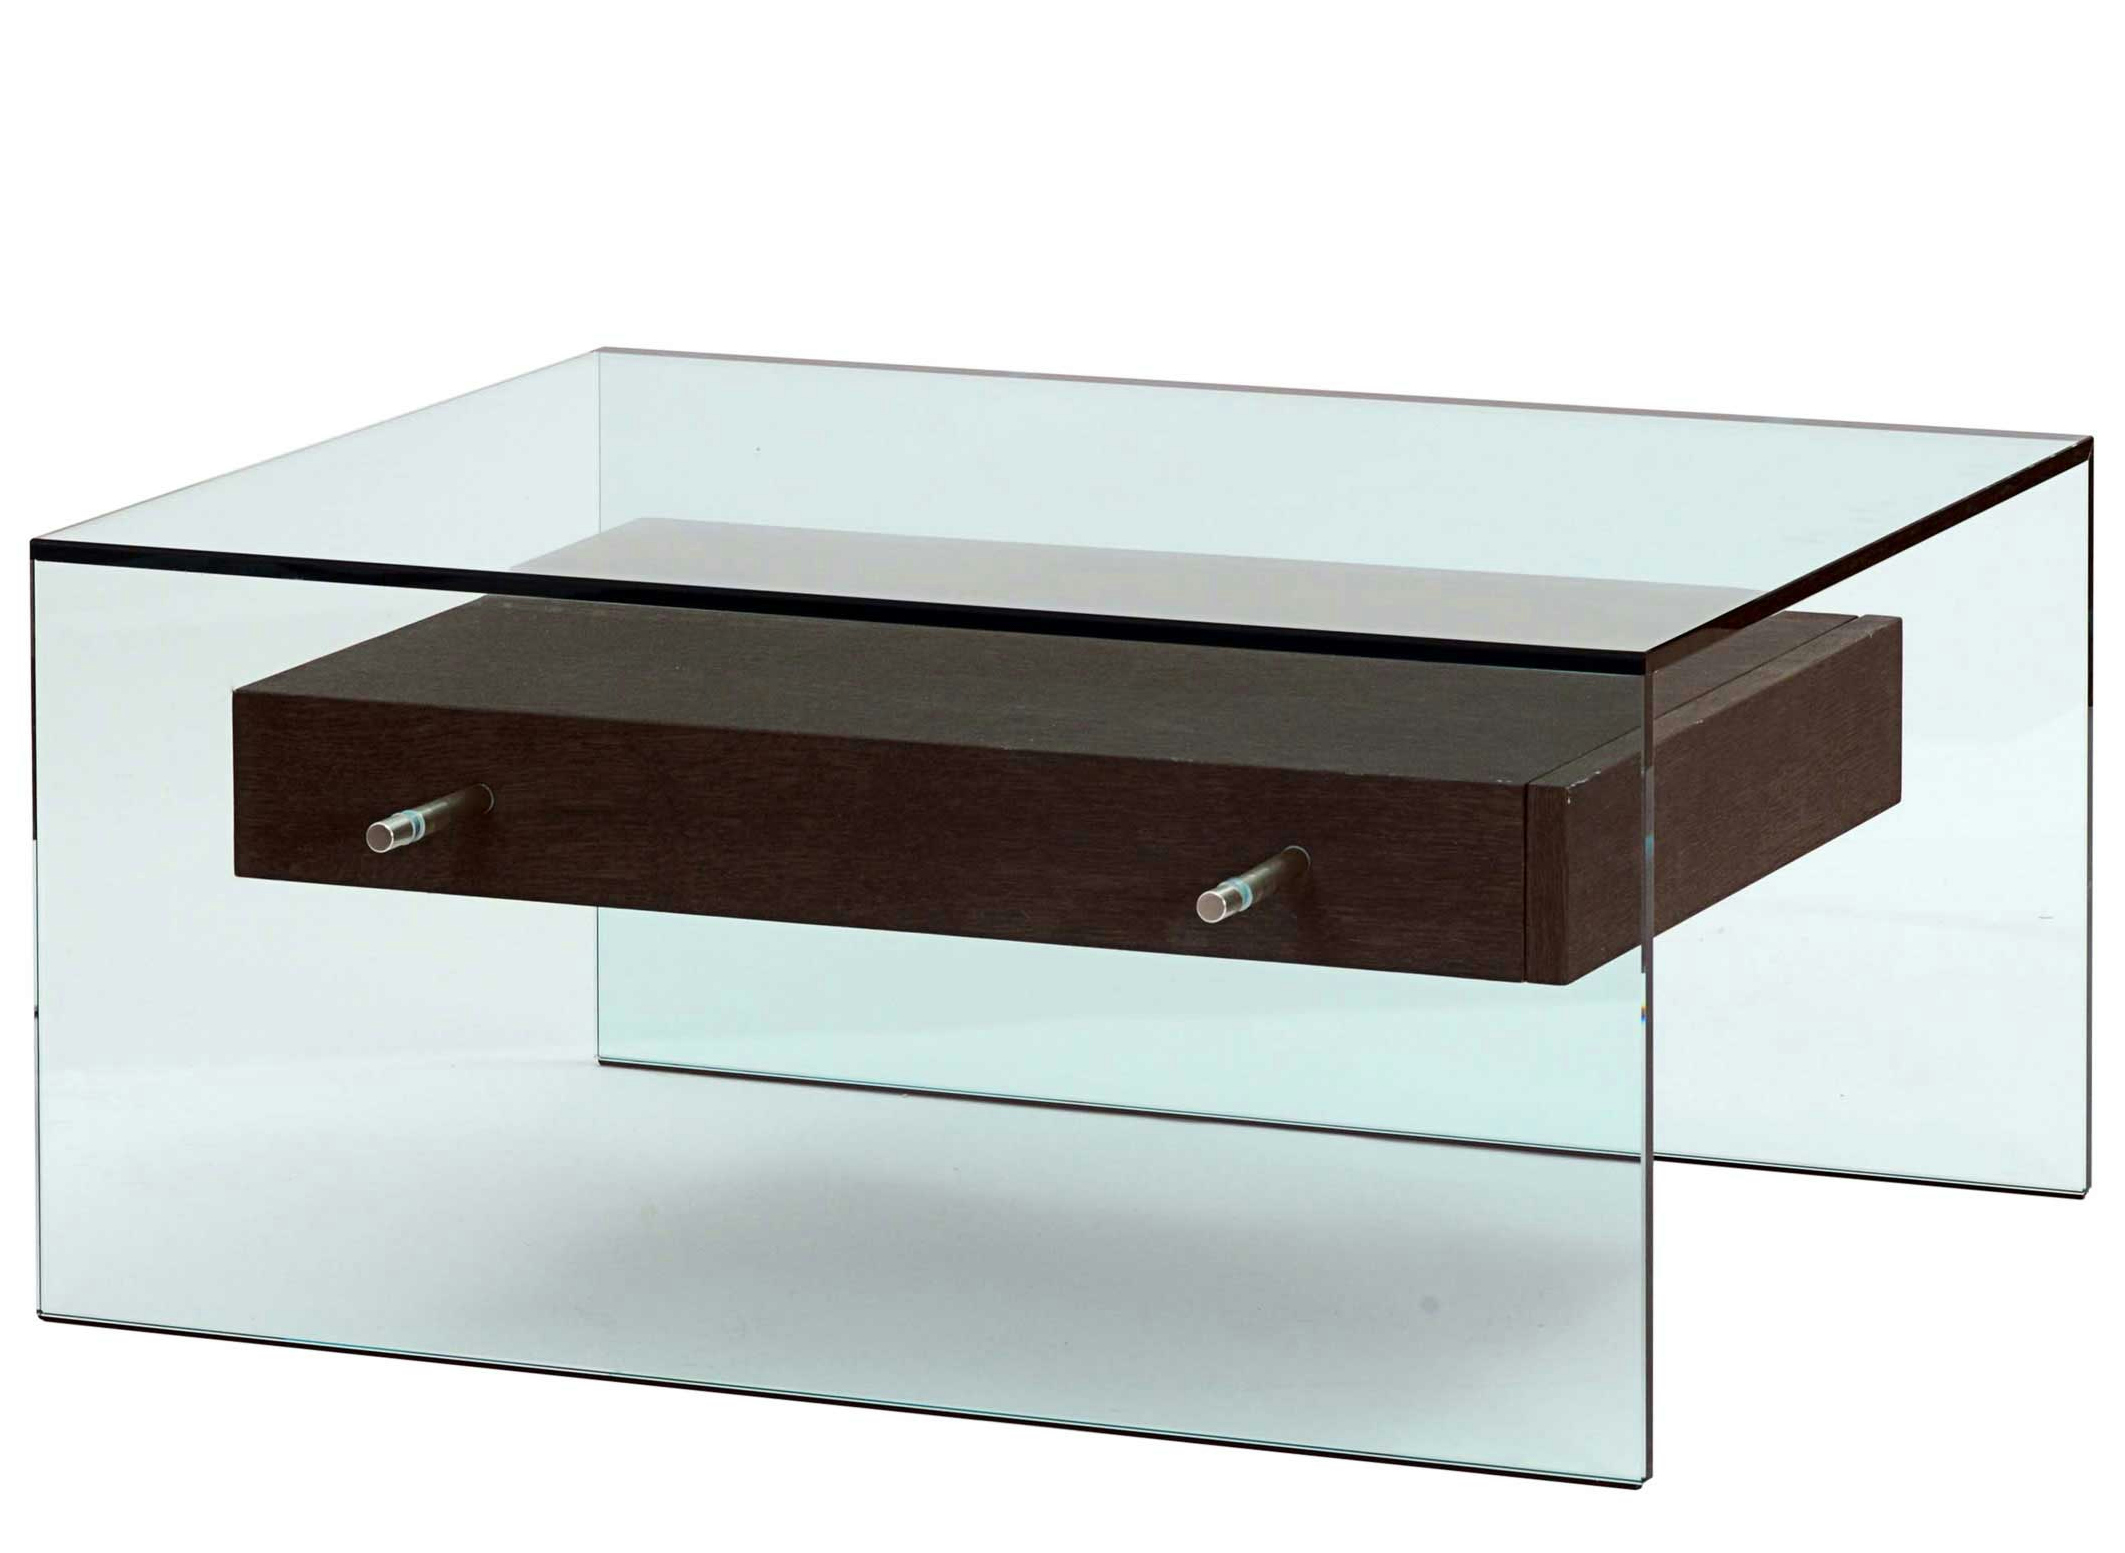 les concepteurs artistiques table basse tea time roche bobois prix. Black Bedroom Furniture Sets. Home Design Ideas